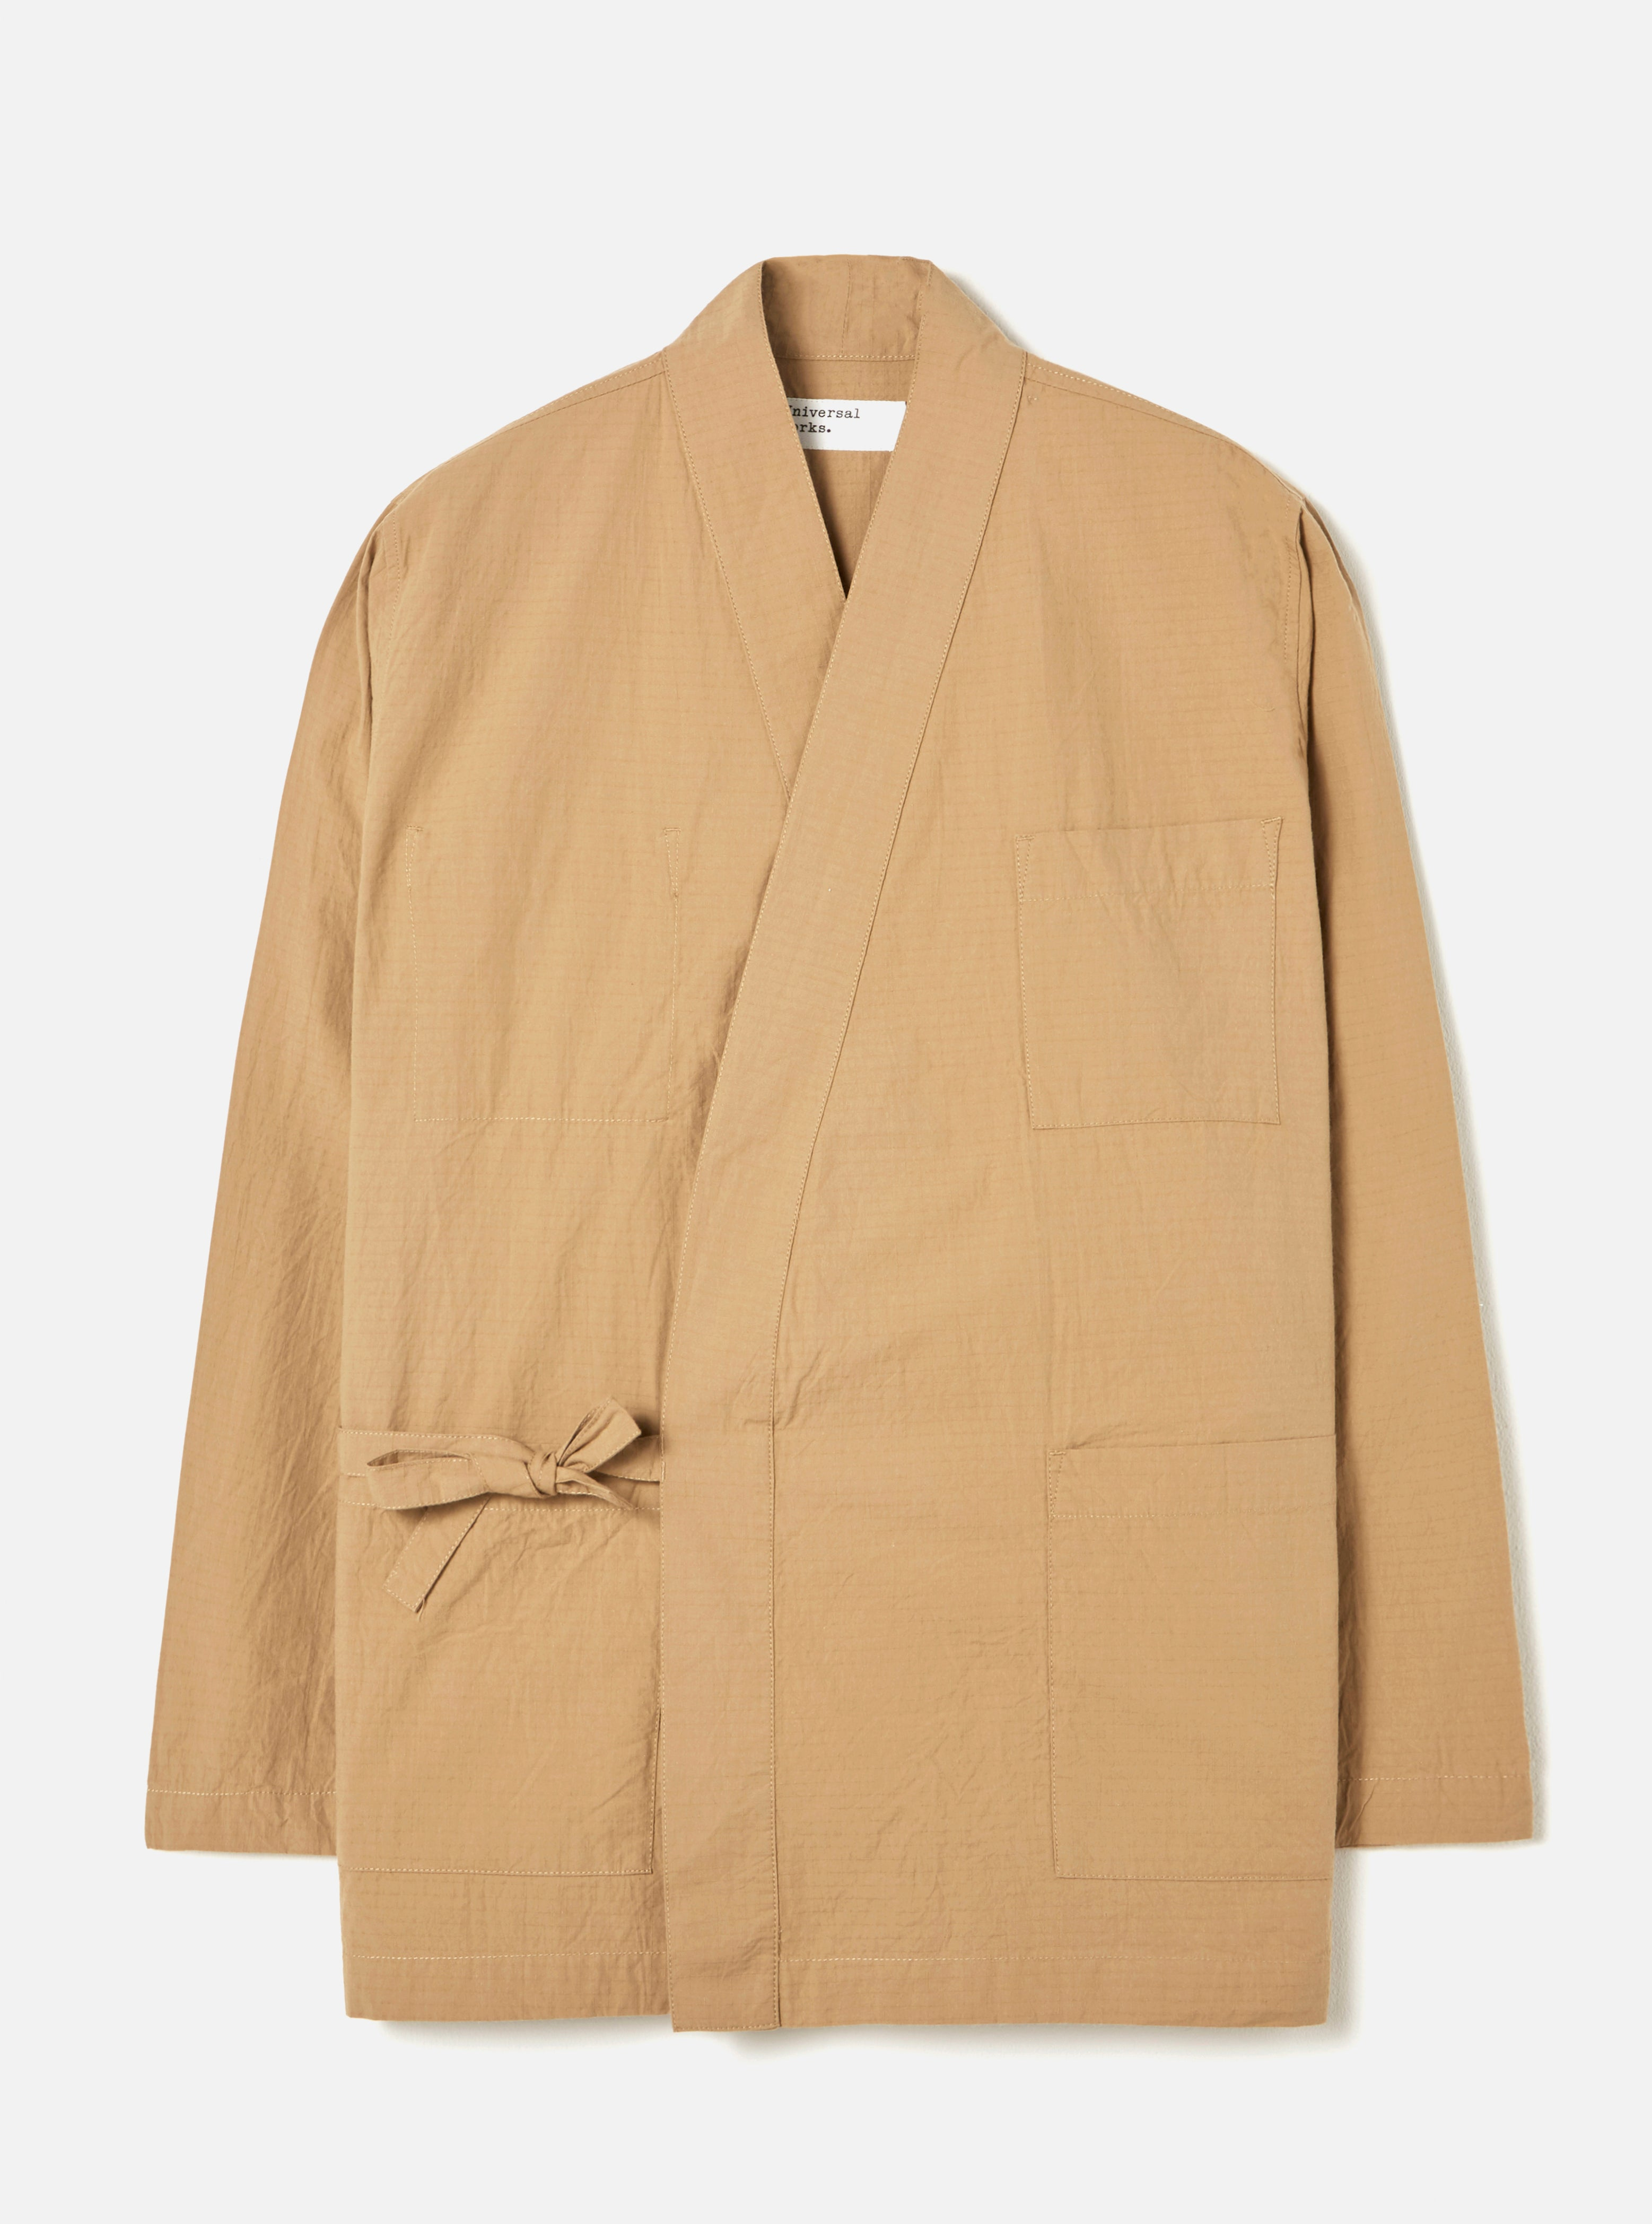 Universal Works Kyoto Work Jacket in Sand Ripstop Cotton